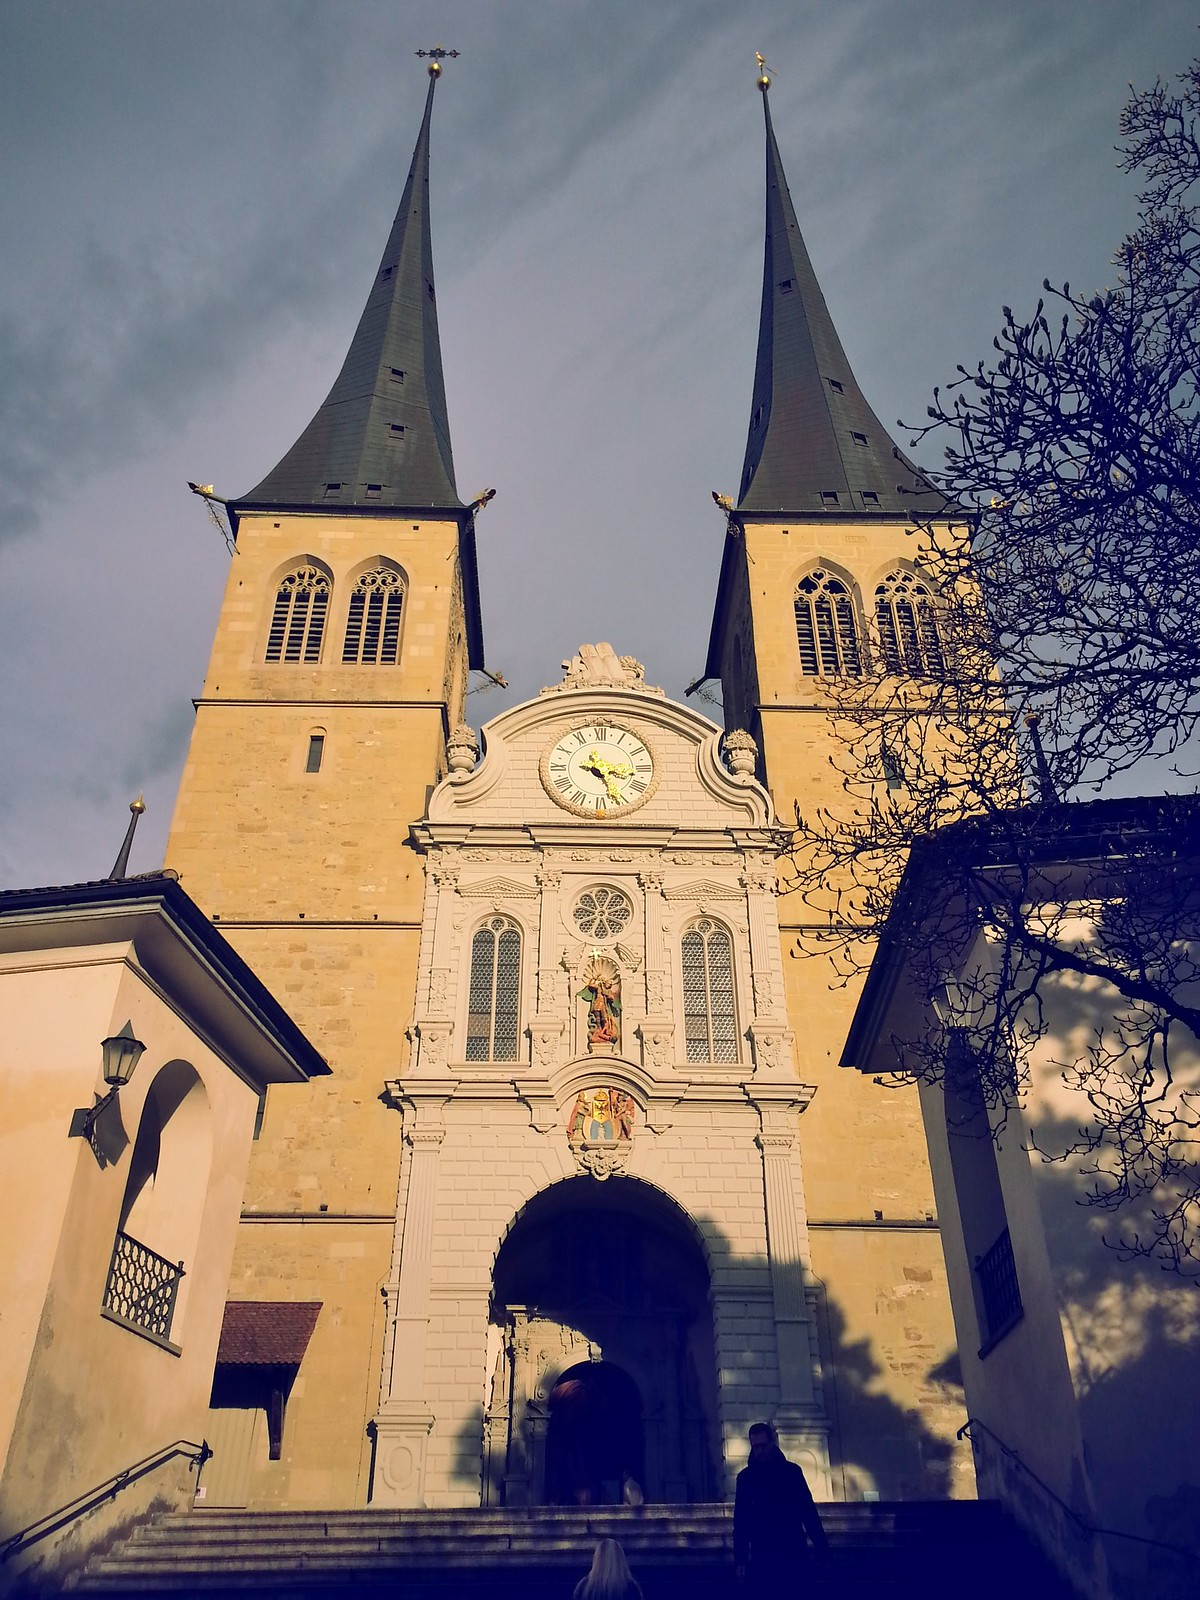 16-01-30 (Lucerne) Church of St. Leodegar.